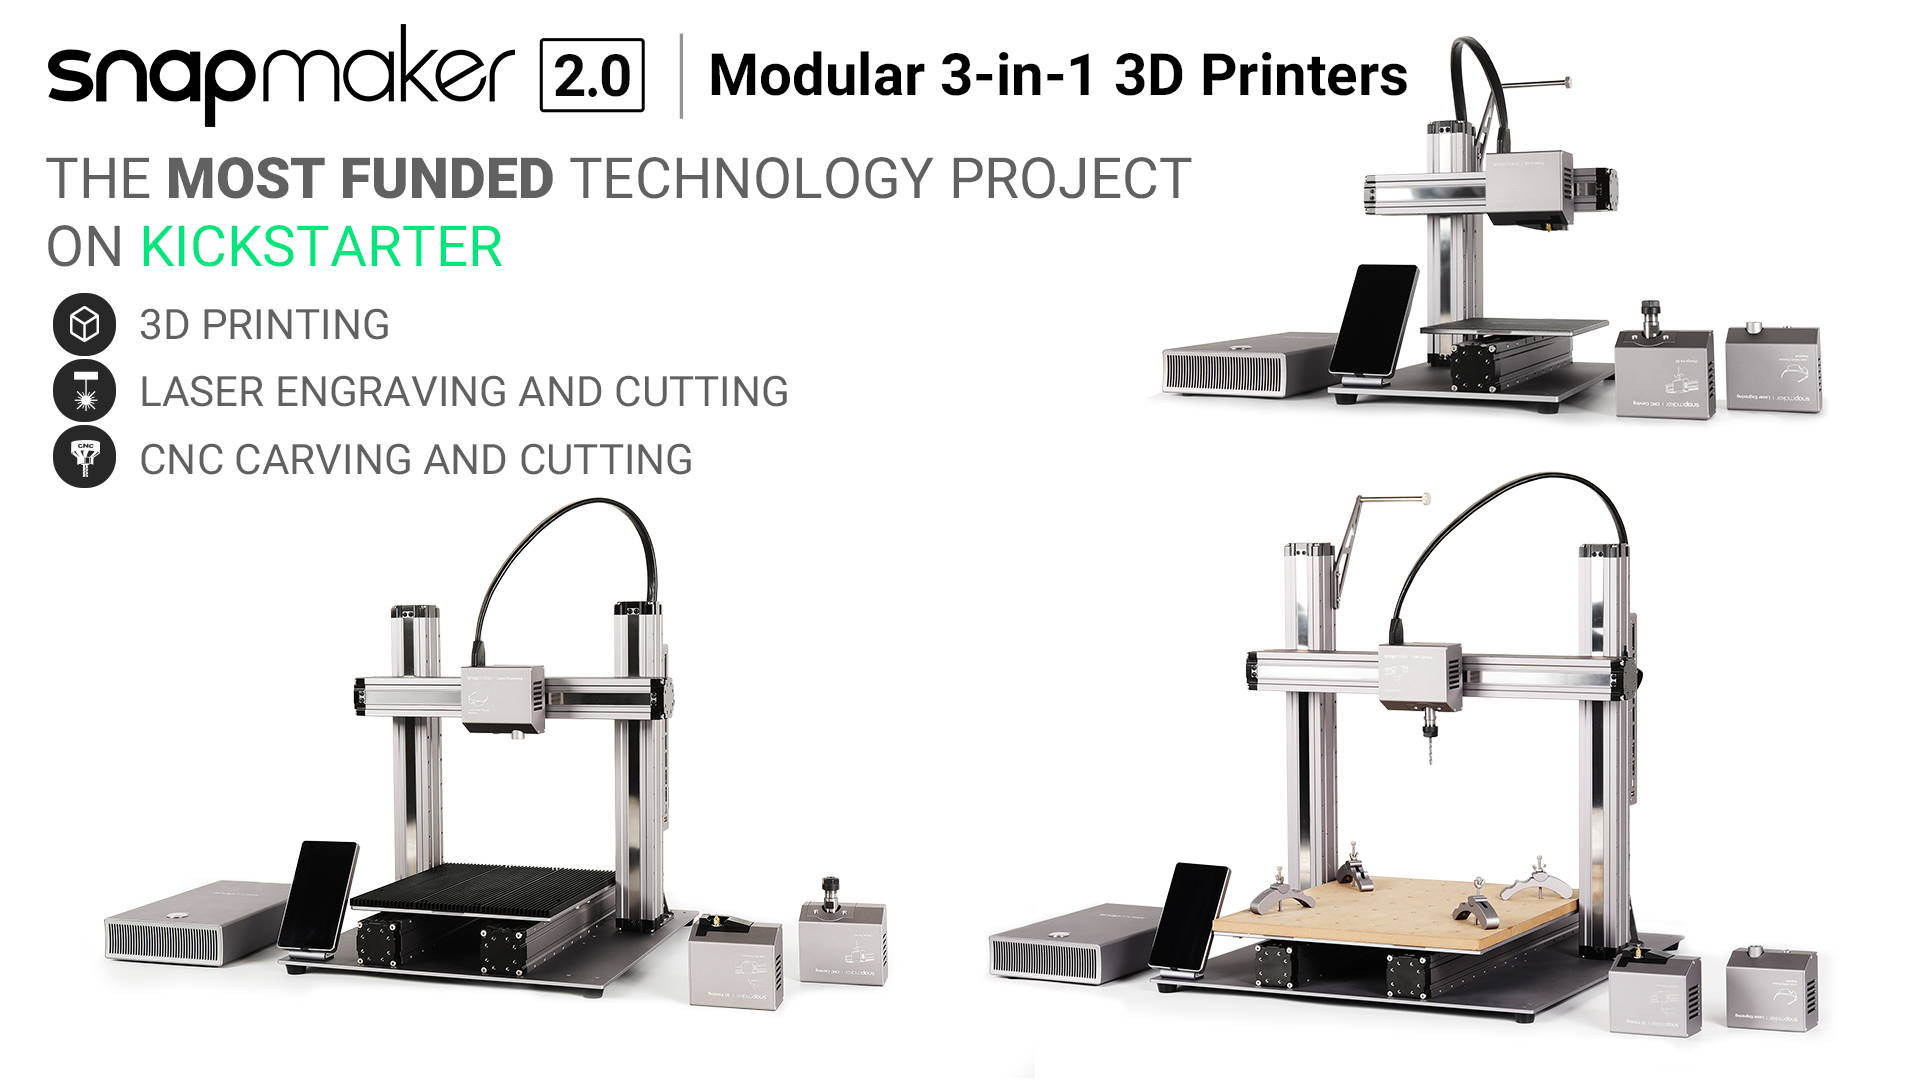 3d Printer Rebuild Software And Electronics Projects Interests And